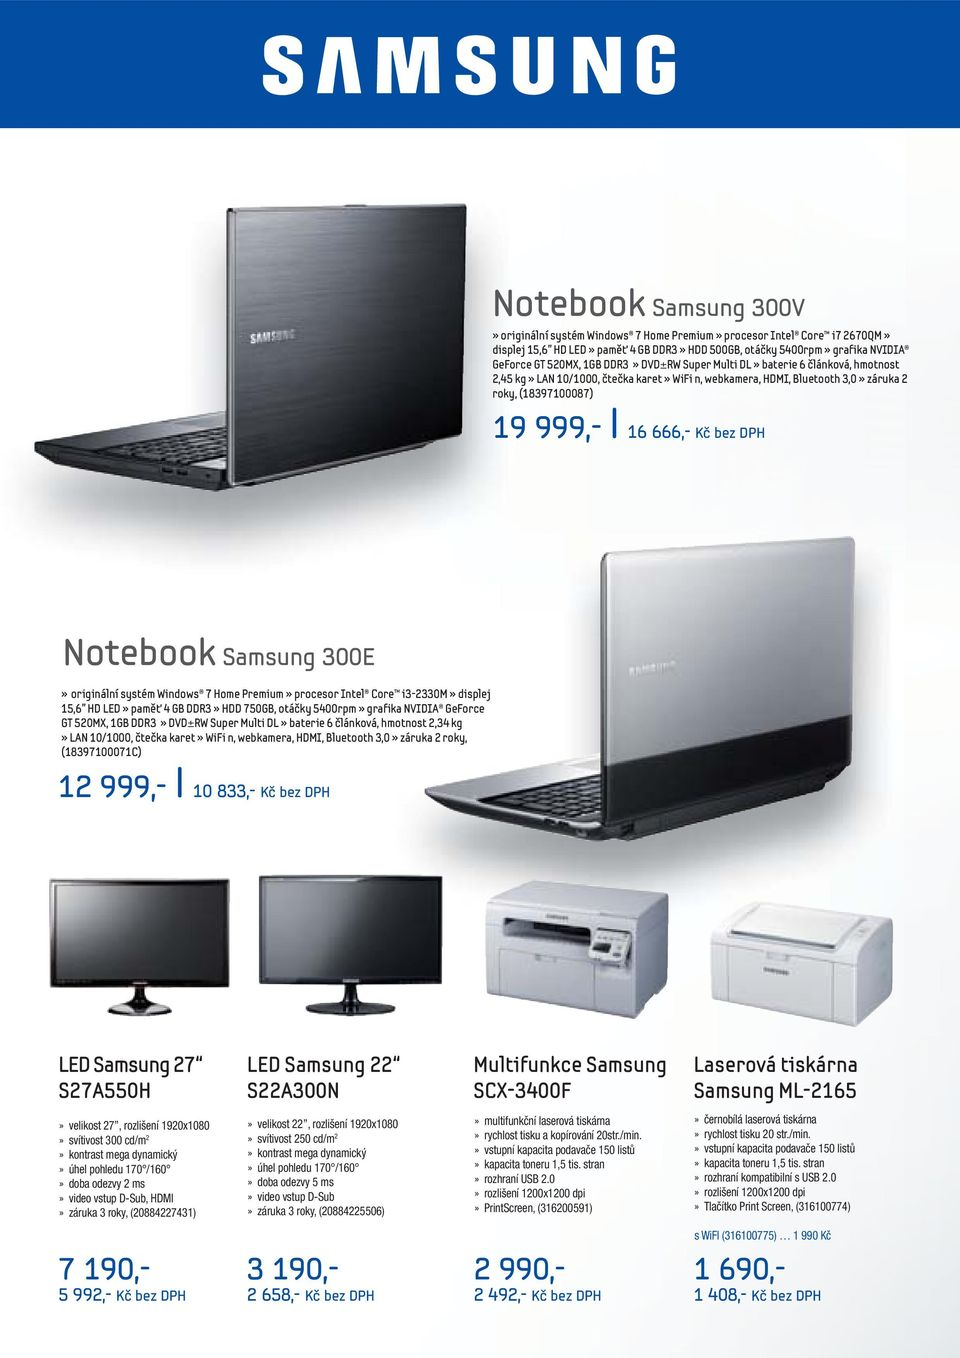 Notebook Samsung 300E» originální systém Windows 7 Home Premium» procesor Intel Core i3-2330m» displej 15,6 HD LED» paměť 4 GB DDR3» HDD 750GB, otáčky 5400rpm» grafika NVIDIA GeForce GT 520MX, 1GB